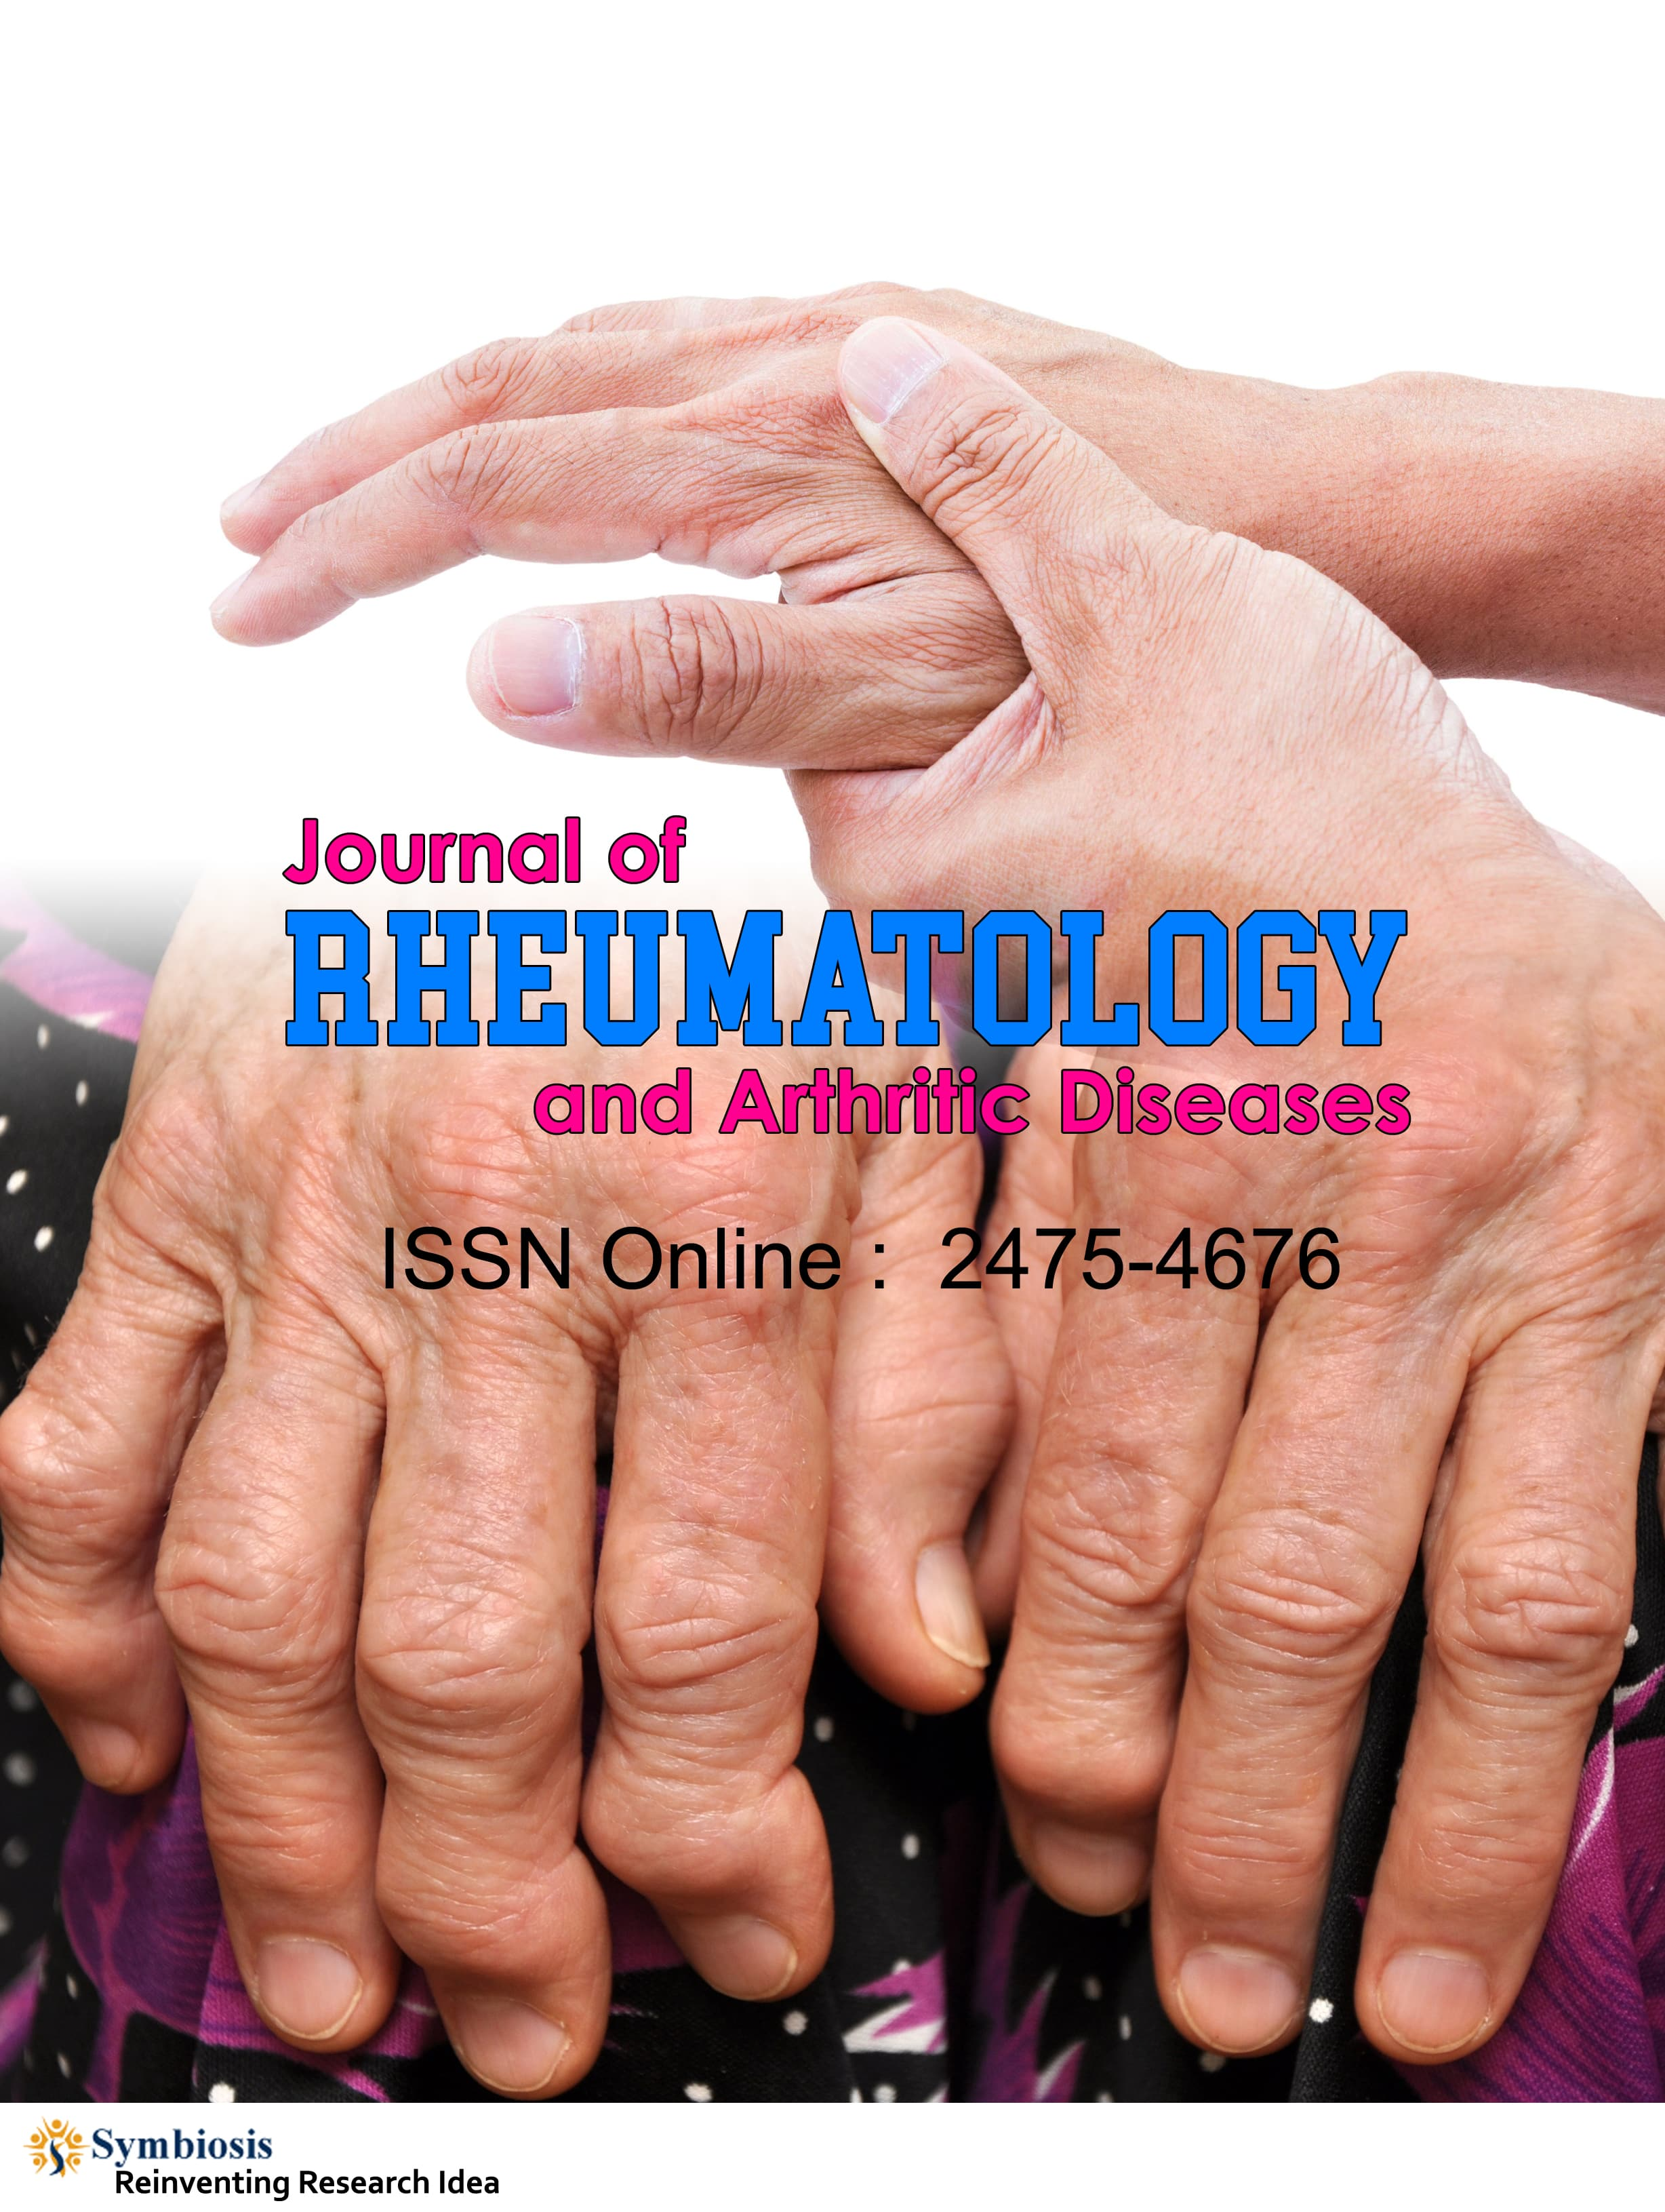 Journal of Rheumatology and Arthritic Diseases